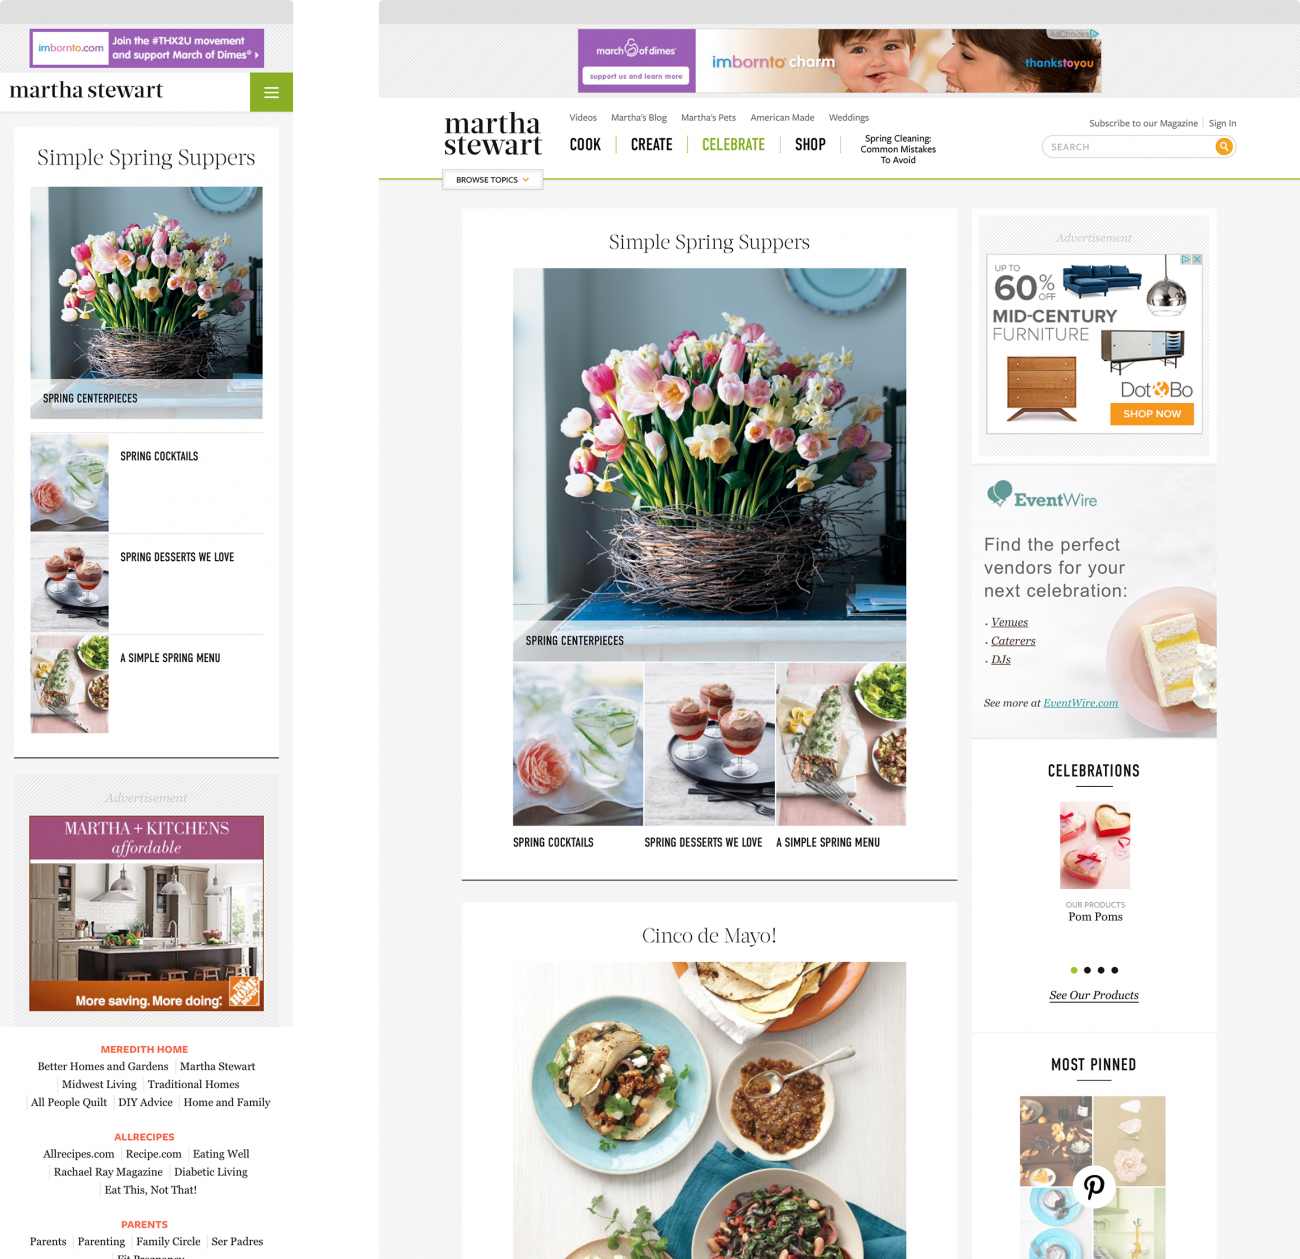 Mockup of the Martha Stewart Living website